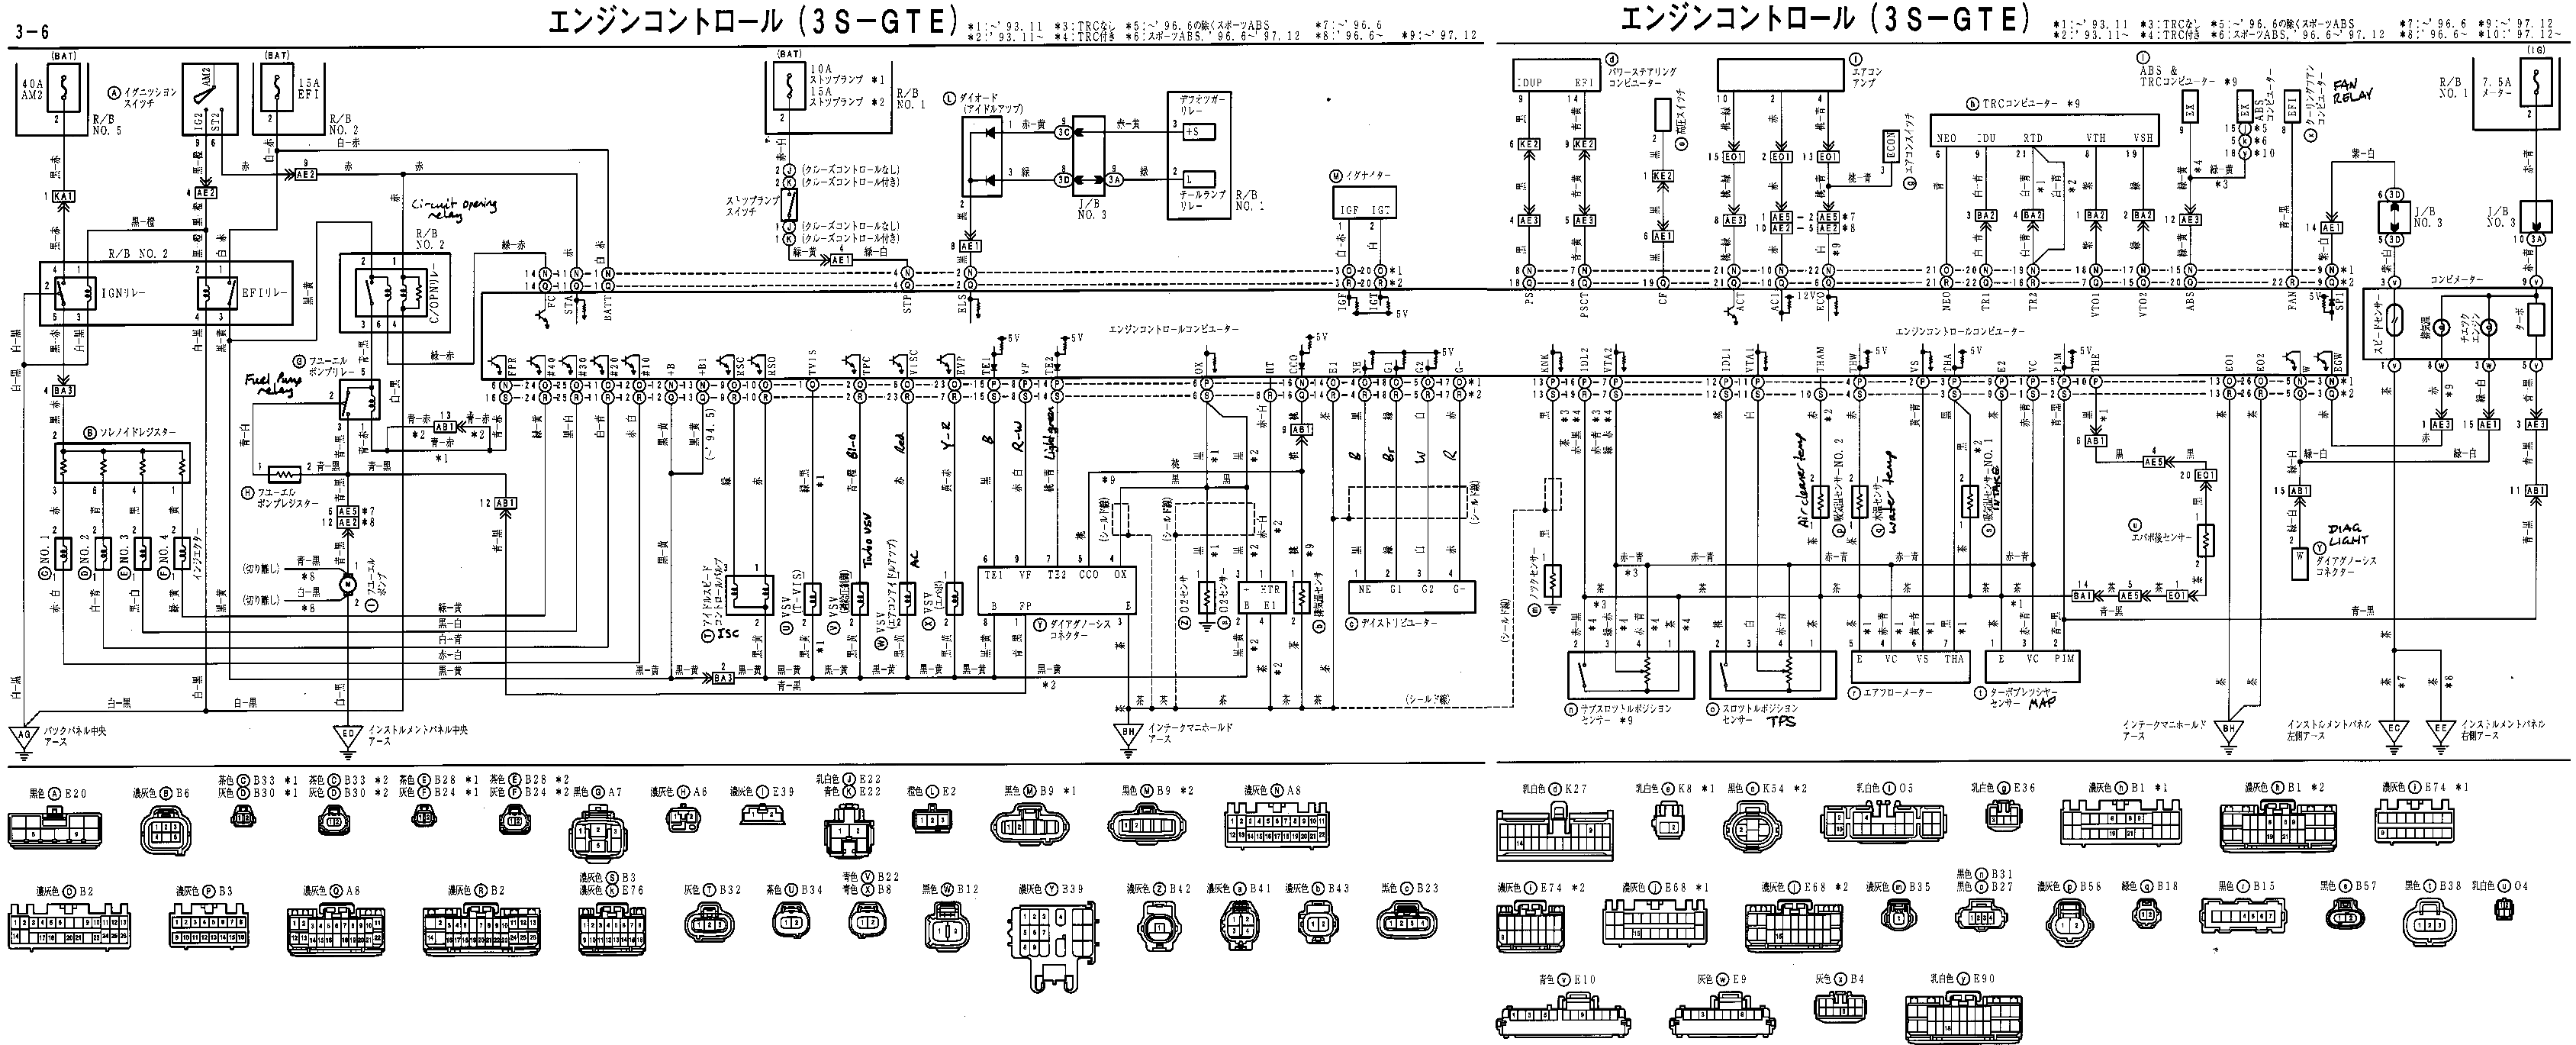 Unknown 3SGTE Diagram mwp's toyota celica gt4 (st165, st185, st205) documents & media 1994 Toyota Pickup Wiring Diagram at panicattacktreatment.co